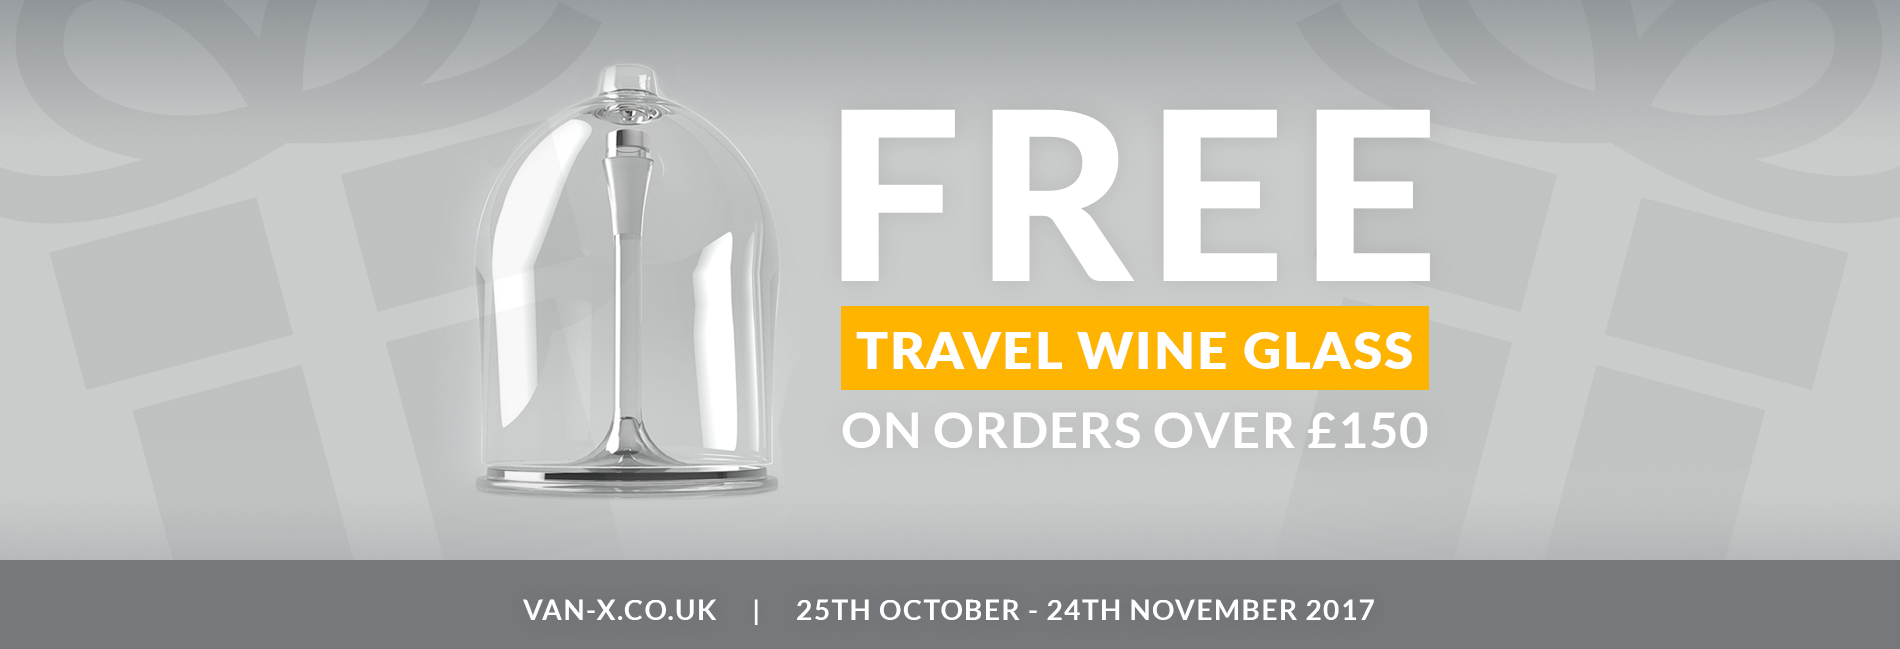 FREE GIFT: VAN-X TRAVEL WINE GLASS